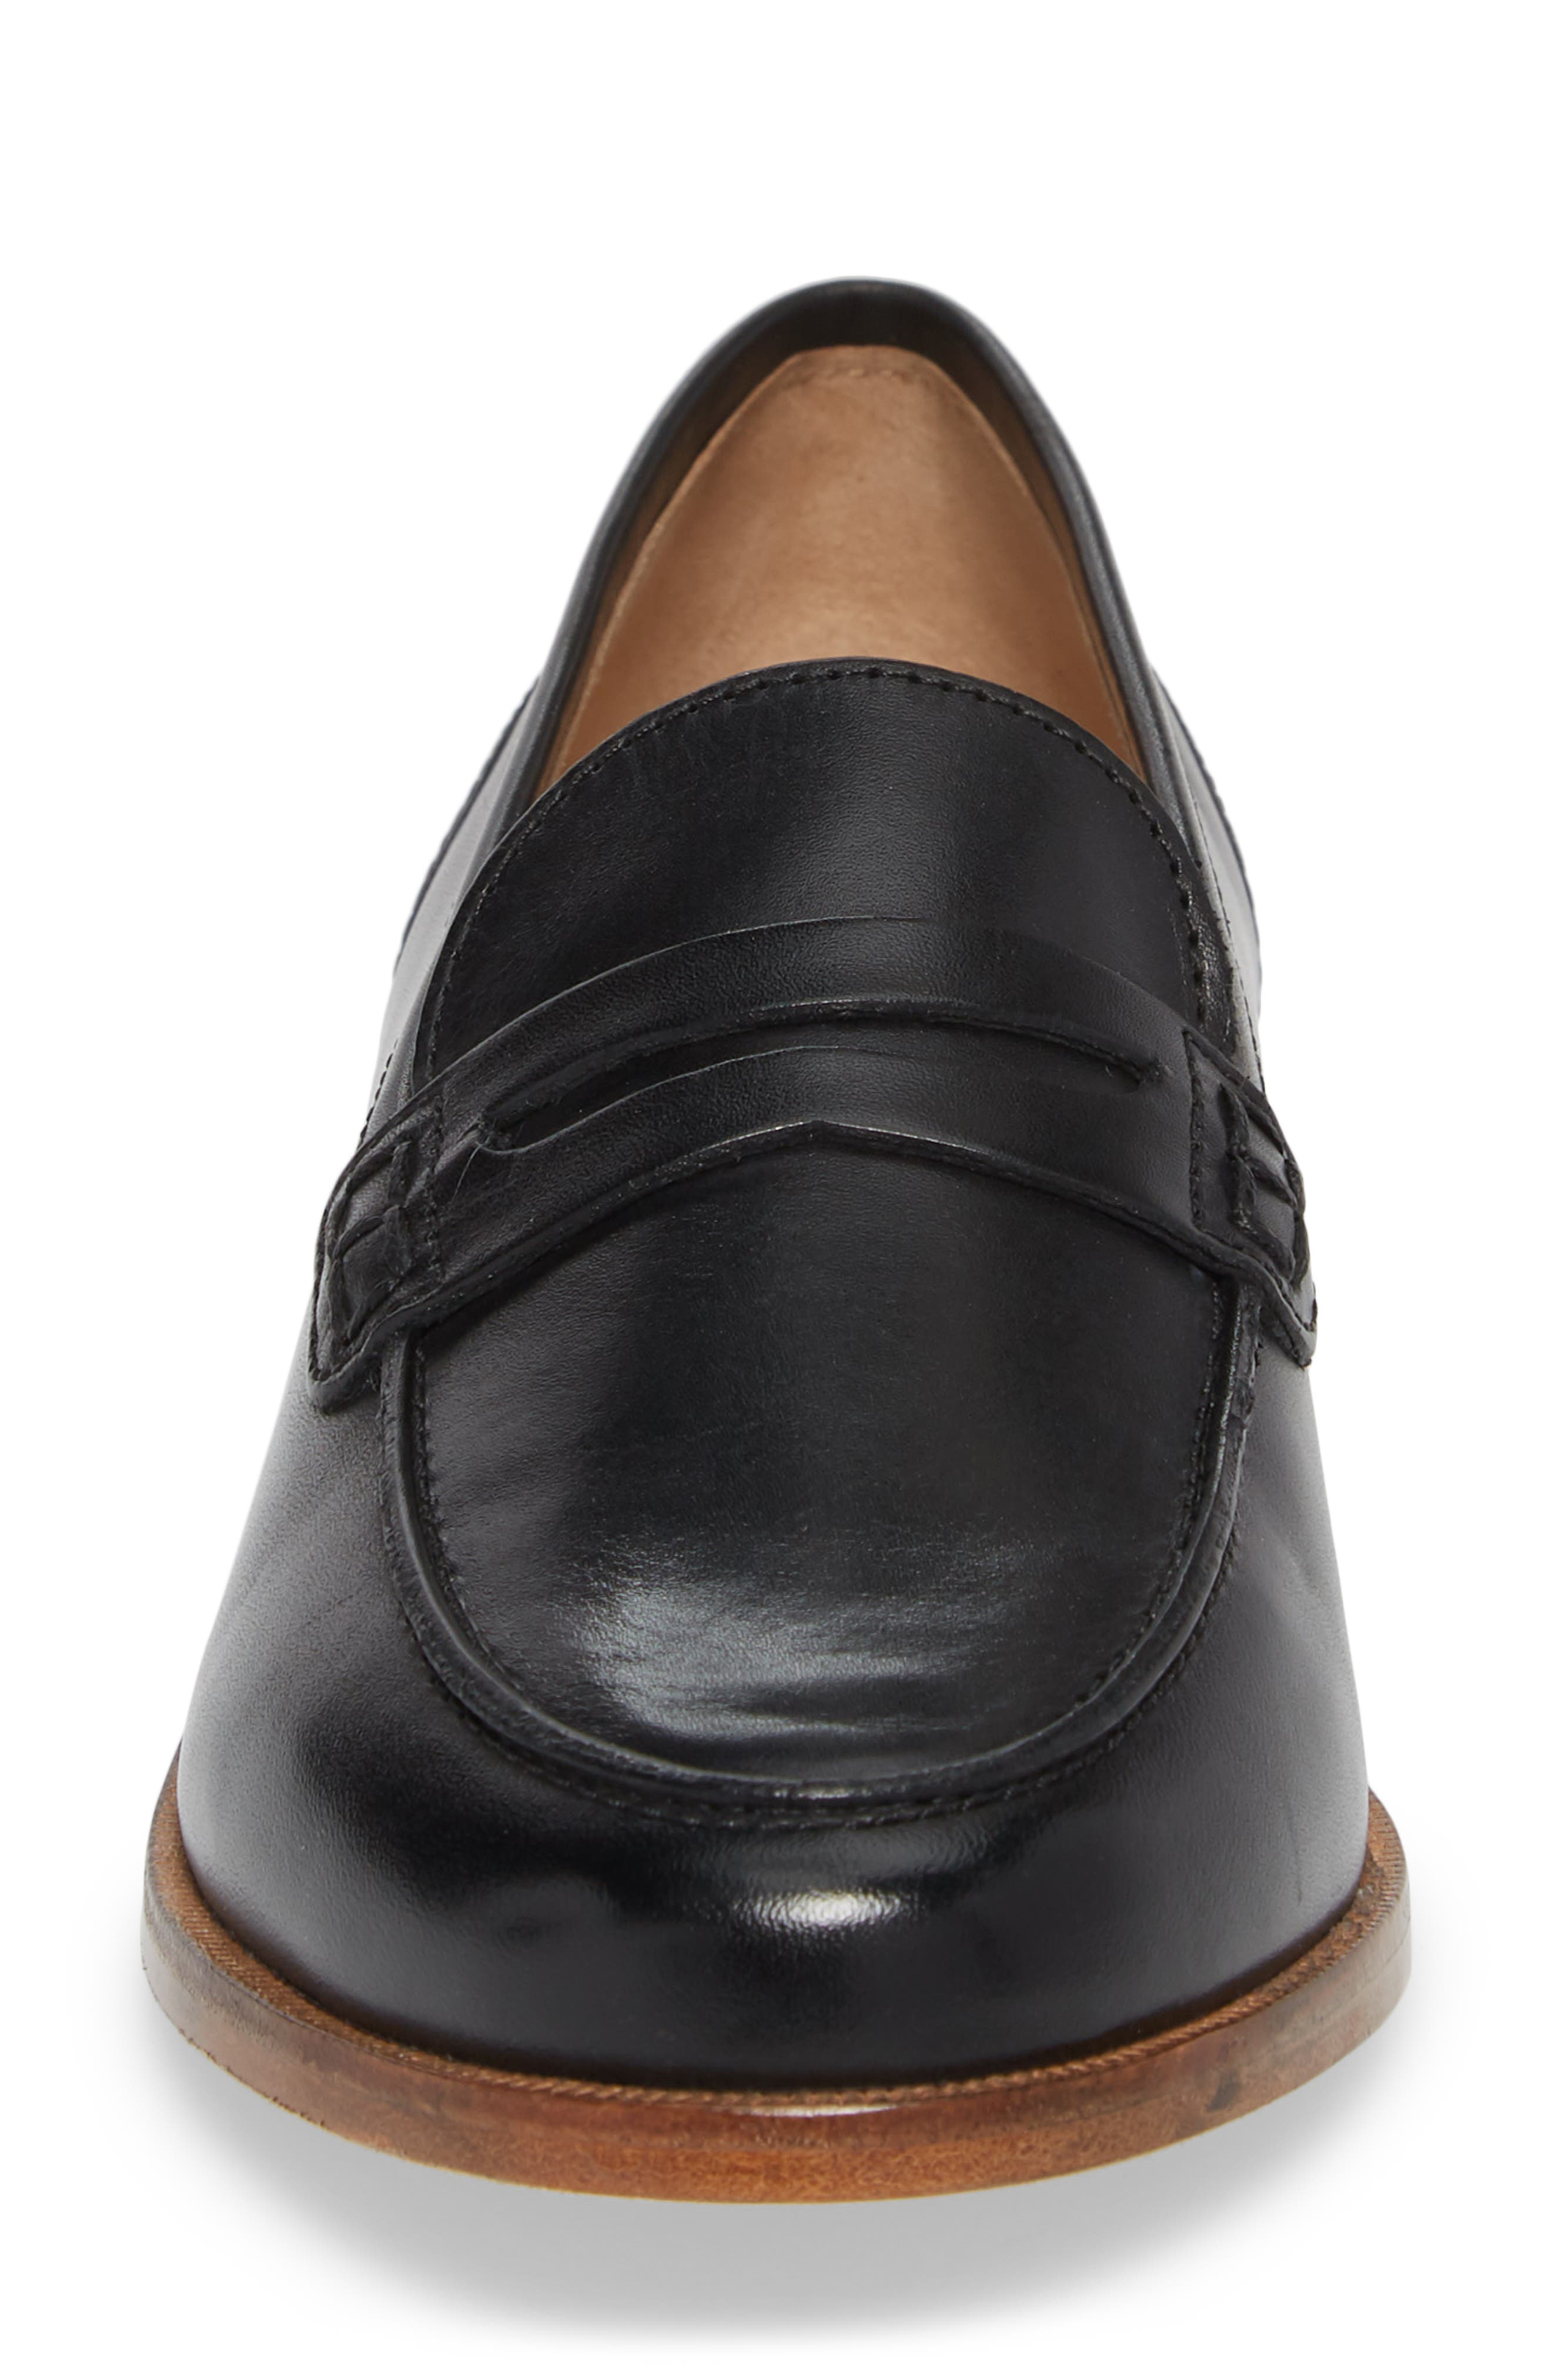 J.CREW, Ryan Penny Loafer, Alternate thumbnail 4, color, BLACK LEATHER